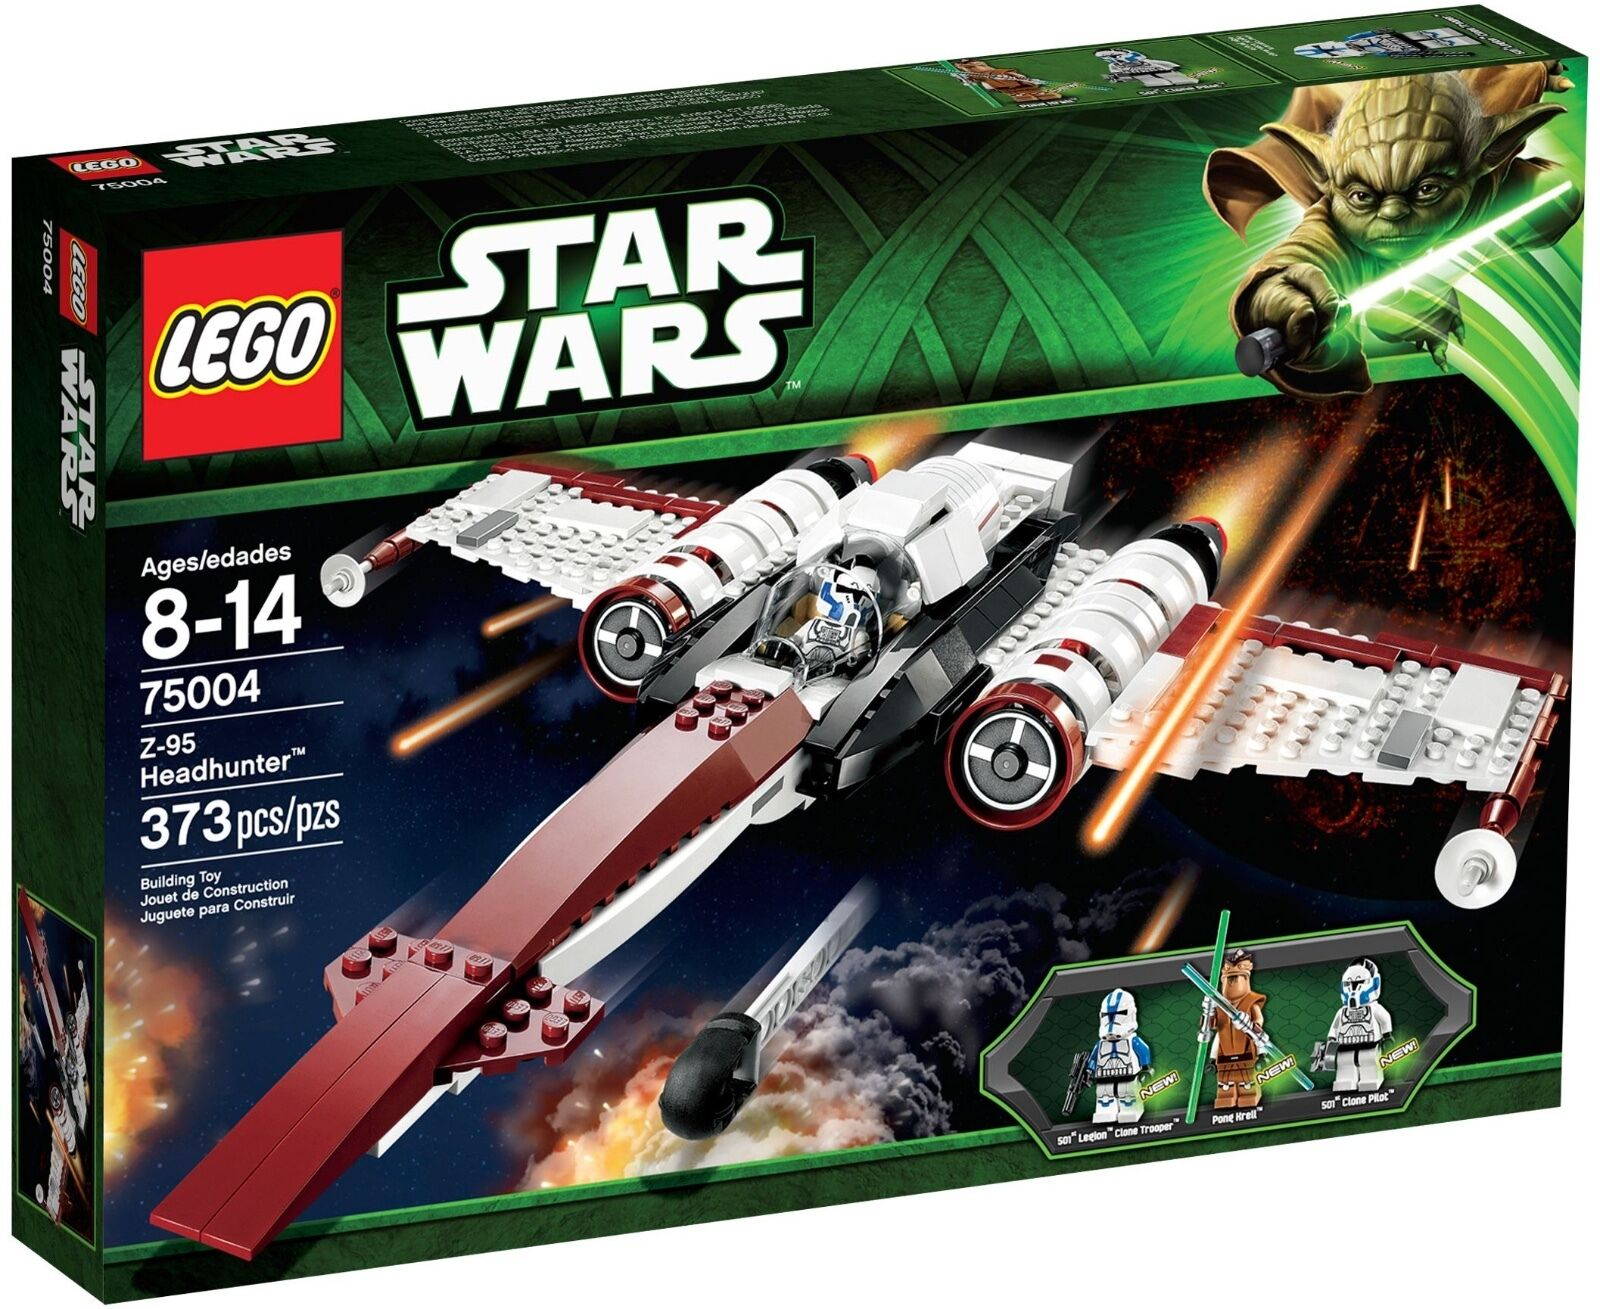 LEGO ® Star Wars ™ 75004 z-95 Headhunter ™ NUOVO OVP NEW MISB NRFB